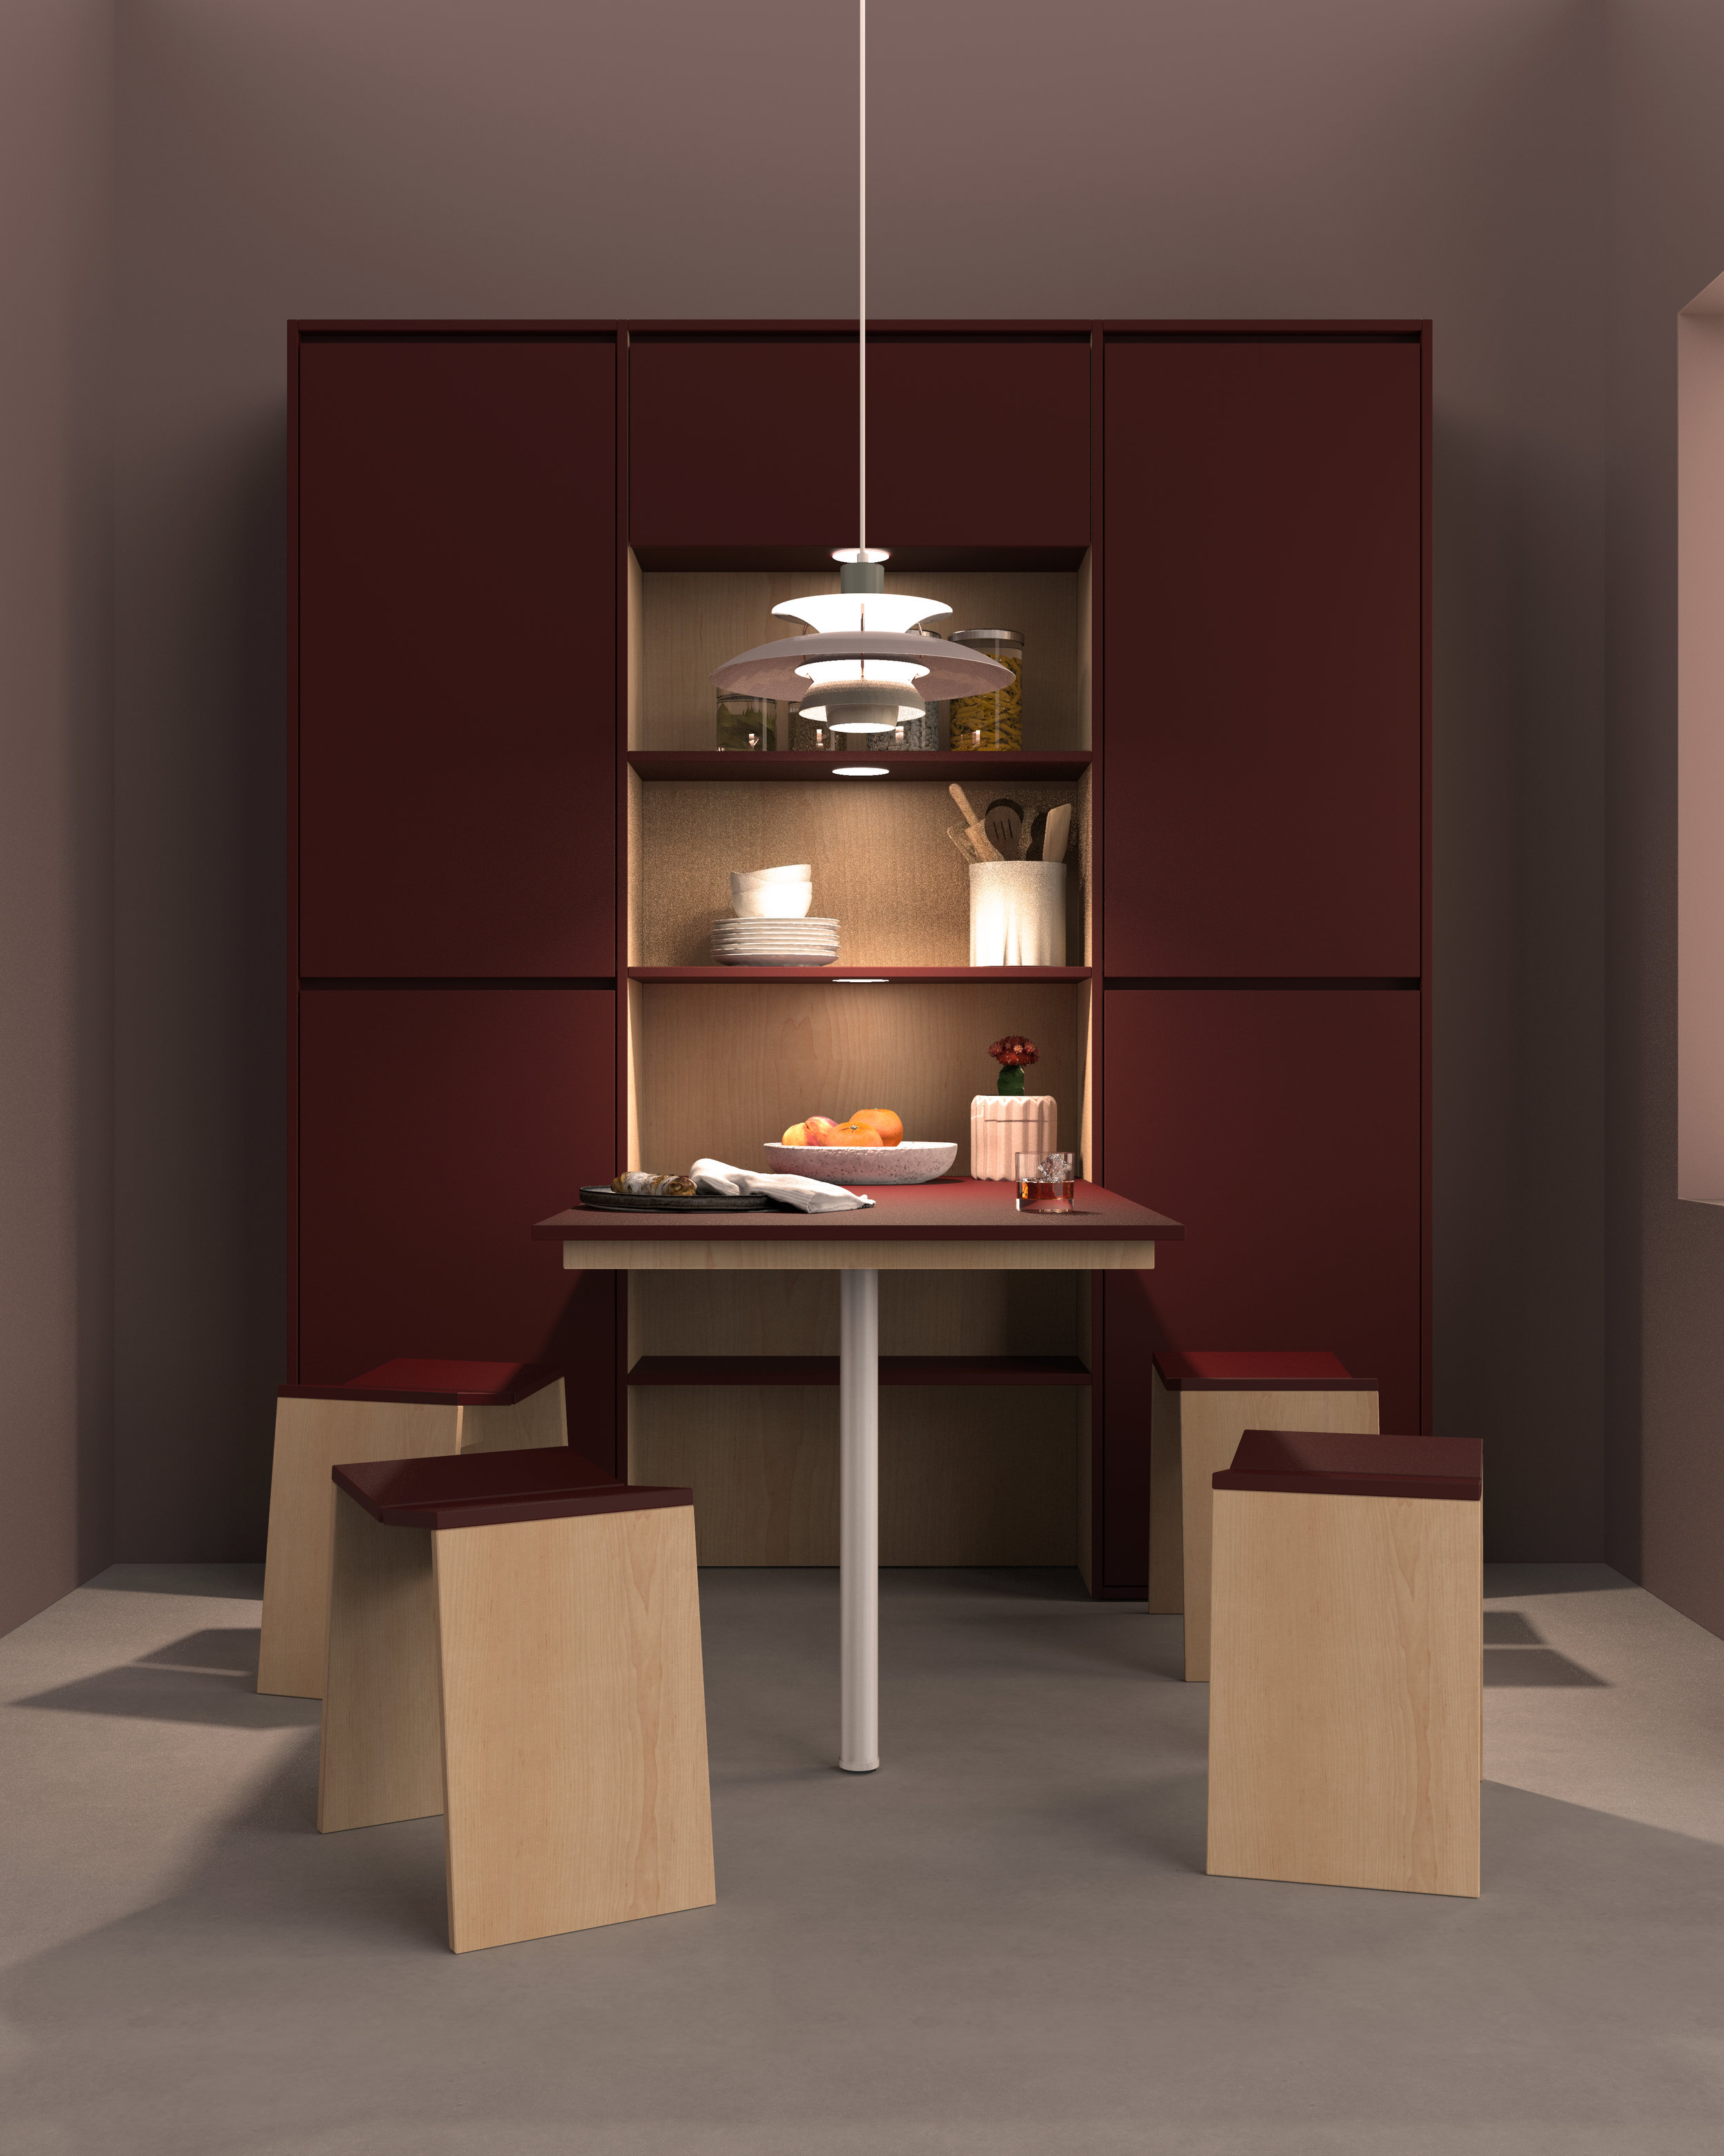 Built in Dining Table Custom Cabinetry Anthill Vancouver.jpg